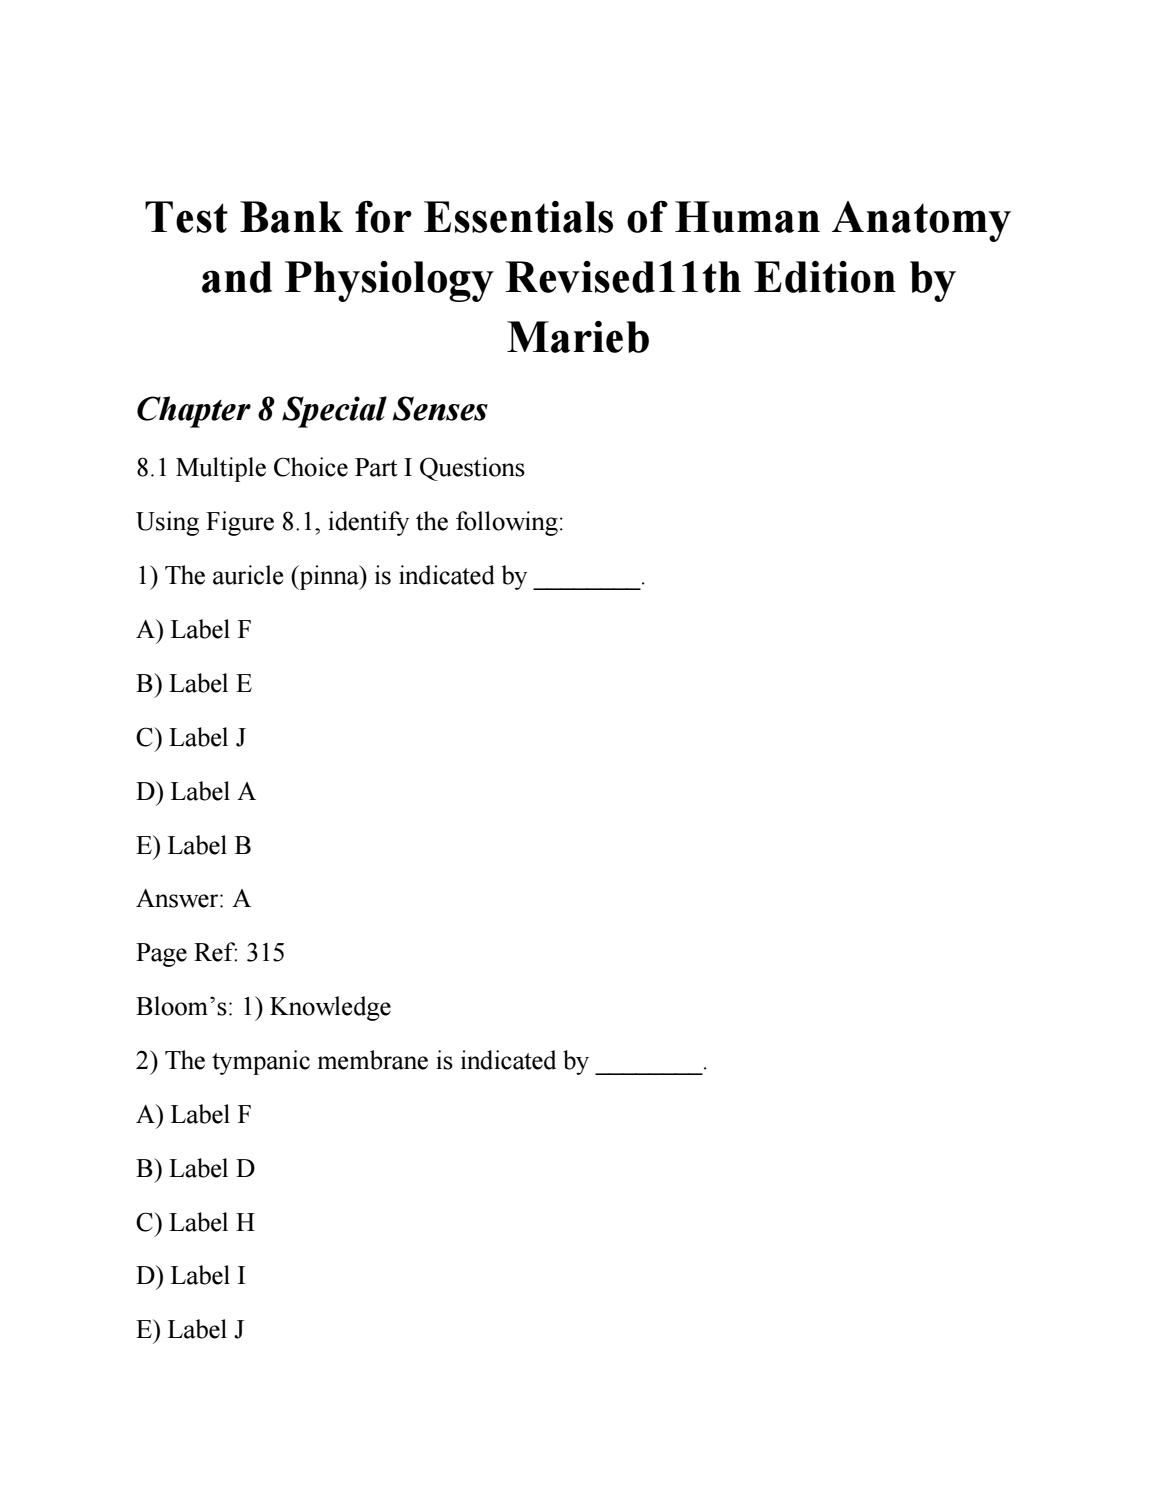 Test Bank For Essentials Of Human Anatomy And Physiology Revised11th